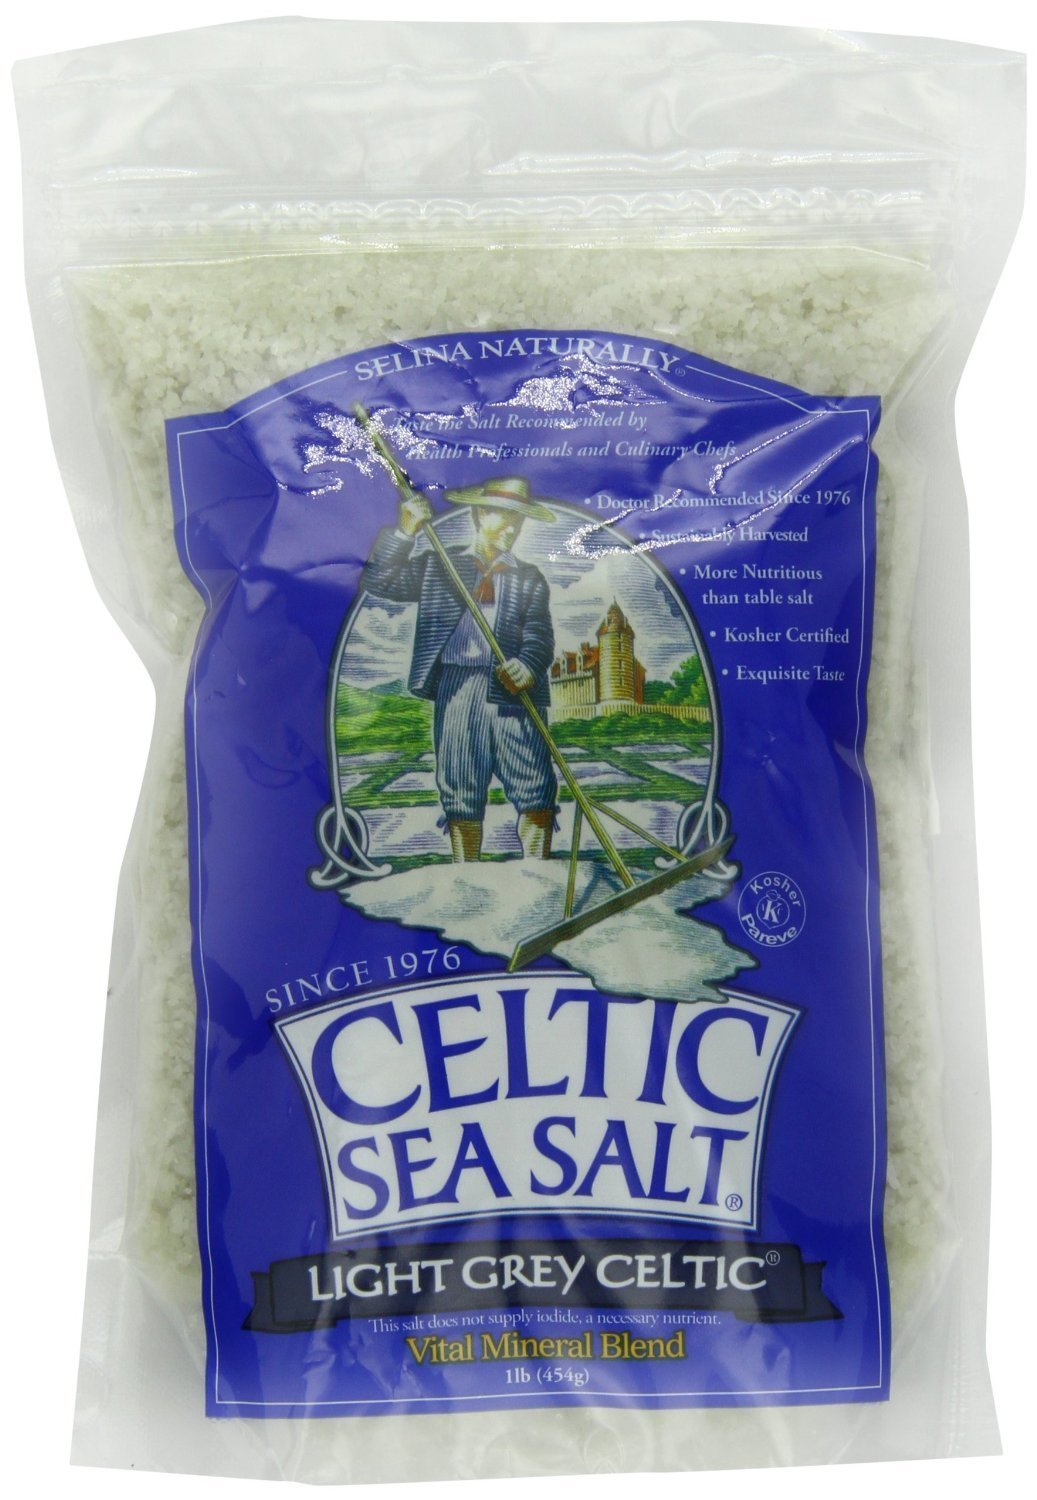 Light Grey Celtic coarse sea salt, 1 lb. bag - Pack of 2